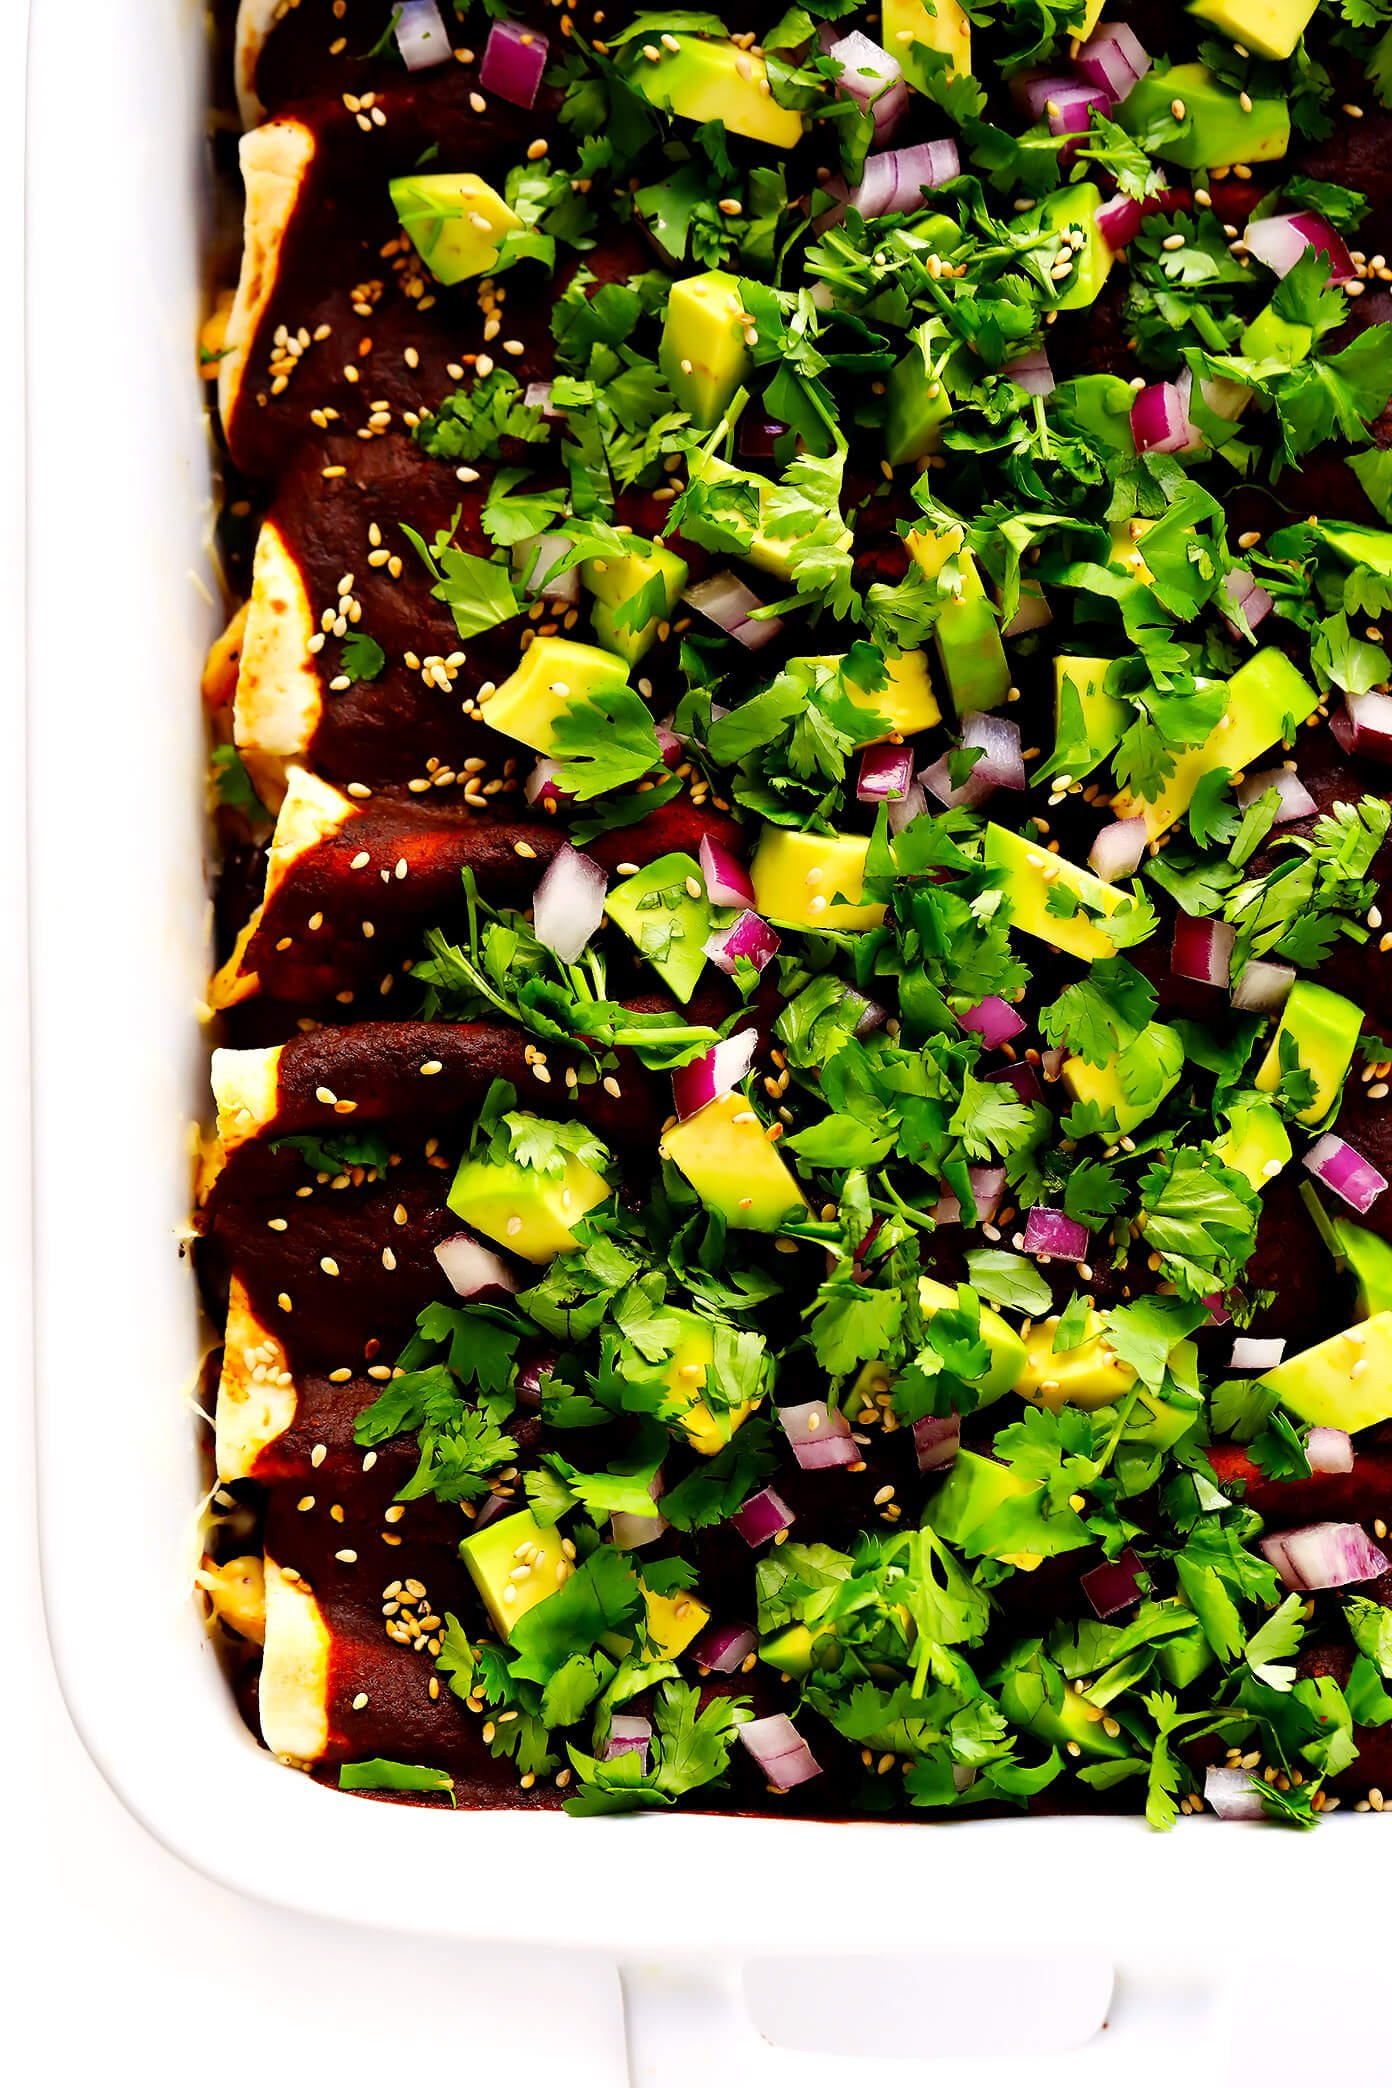 Holy Mole Enchiladas | Made with chicken or your choice of vegetarian fillings